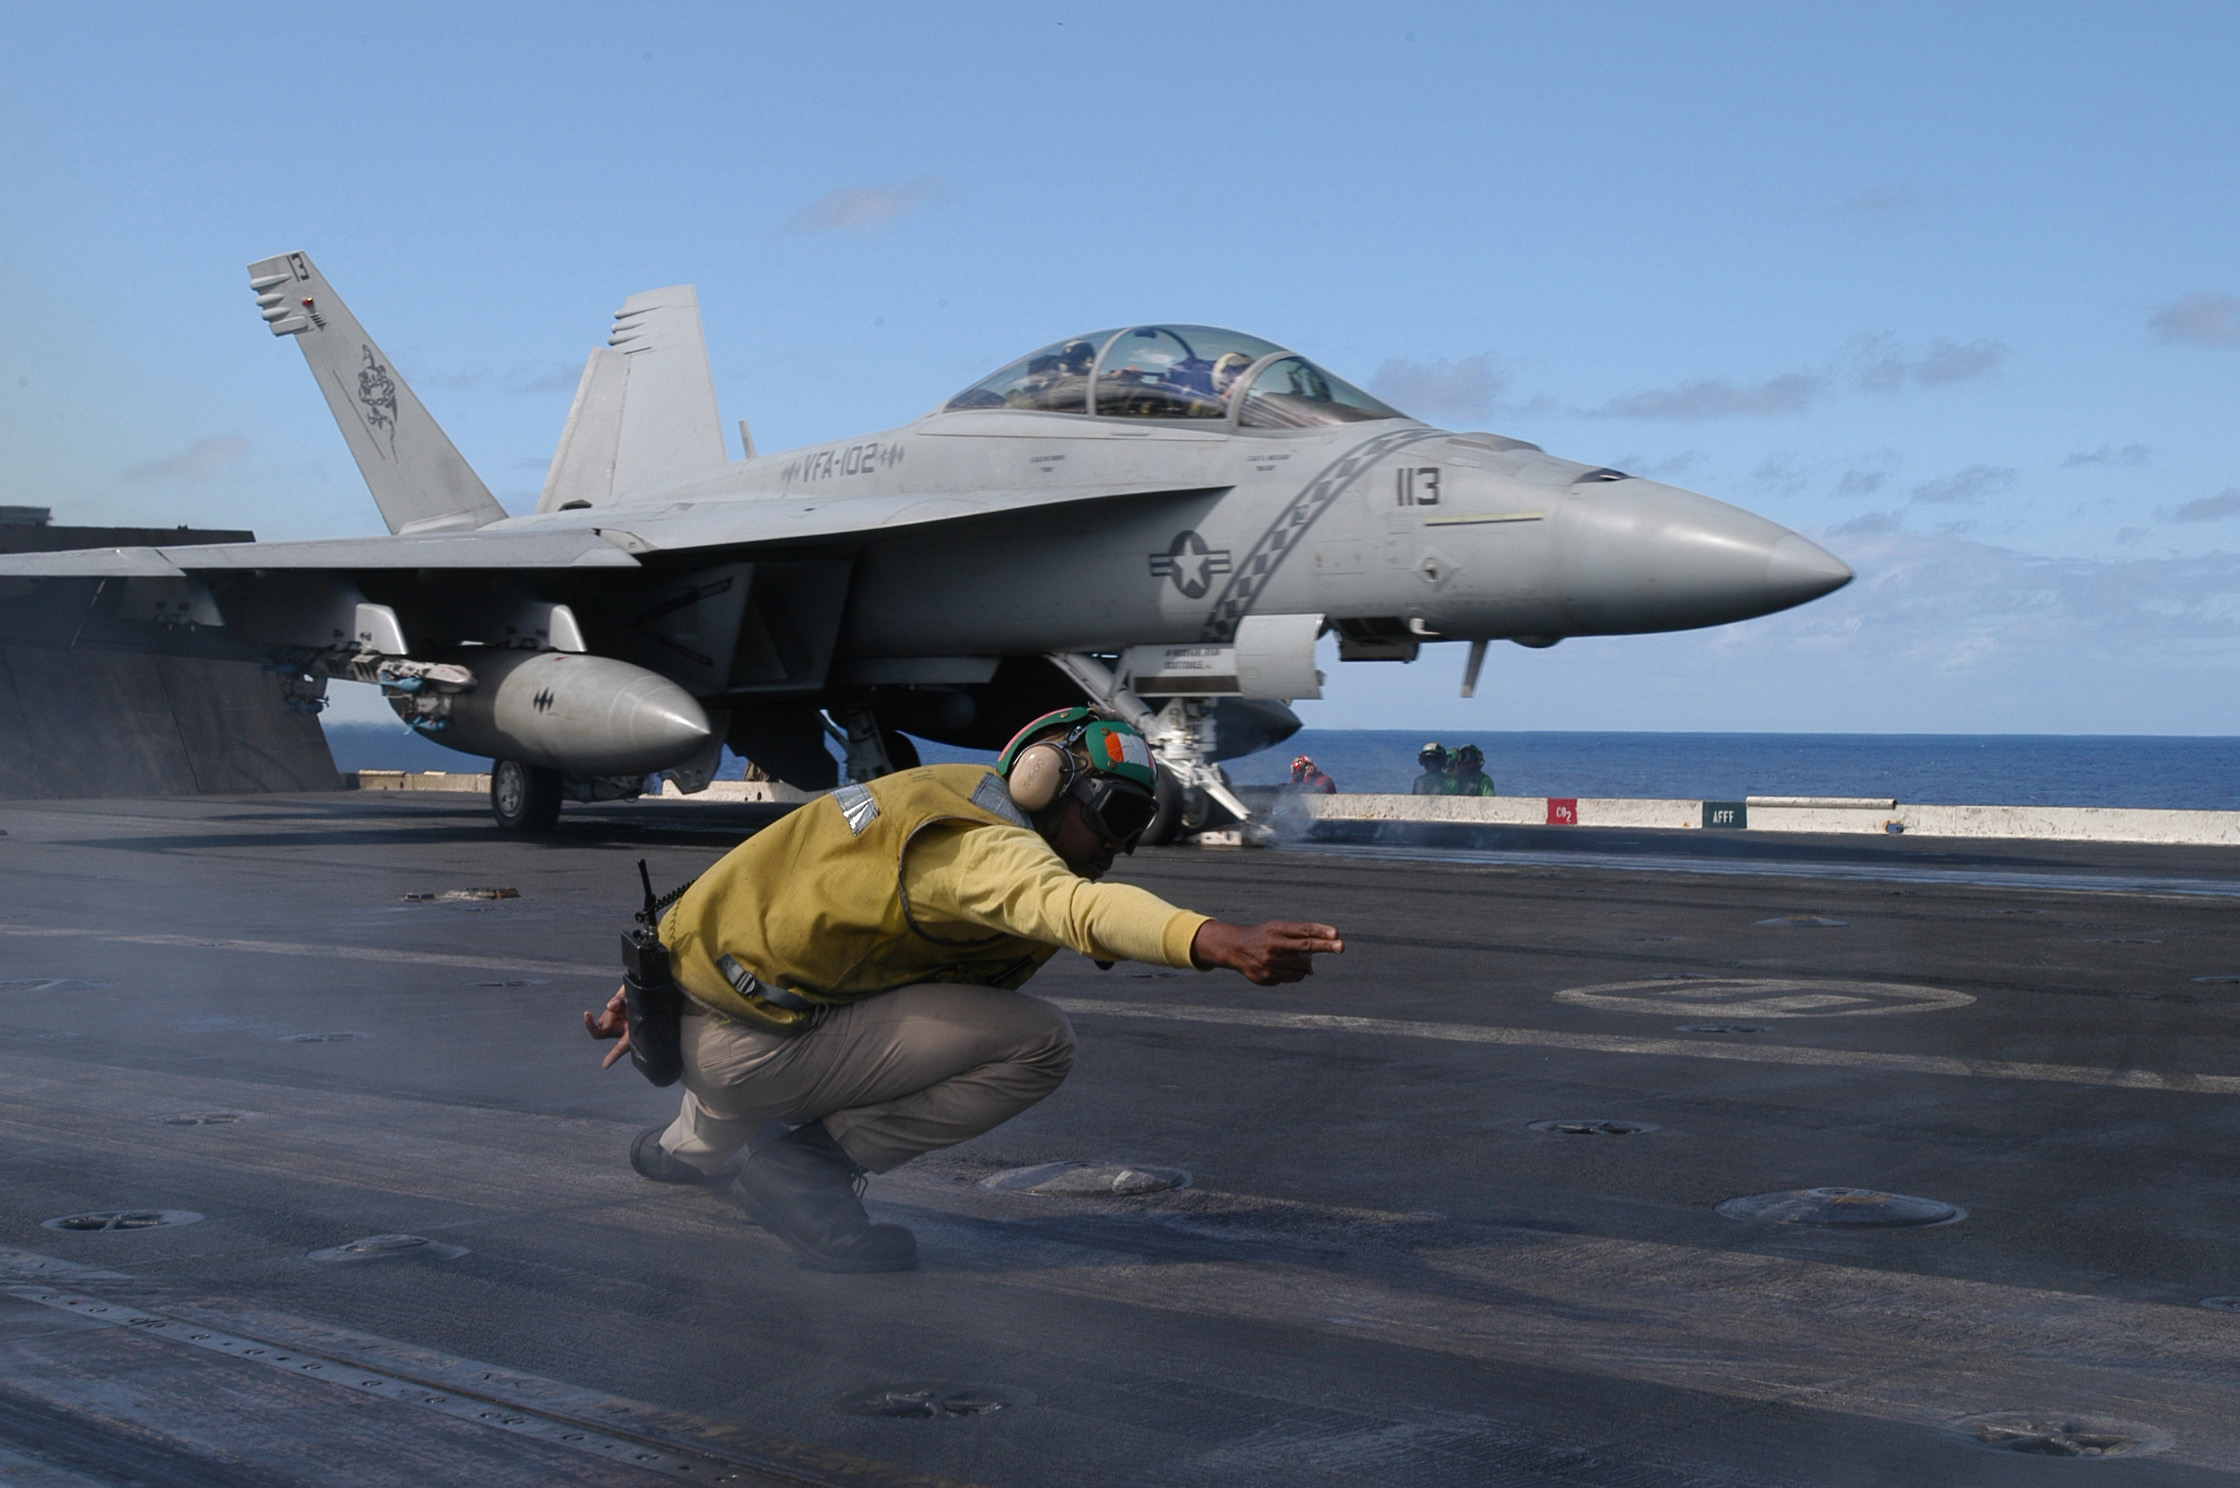 File:US Navy 040420-N-5781F-007 A Catapult officer signals the launch of an F-A-18F Super Hornet.jpg